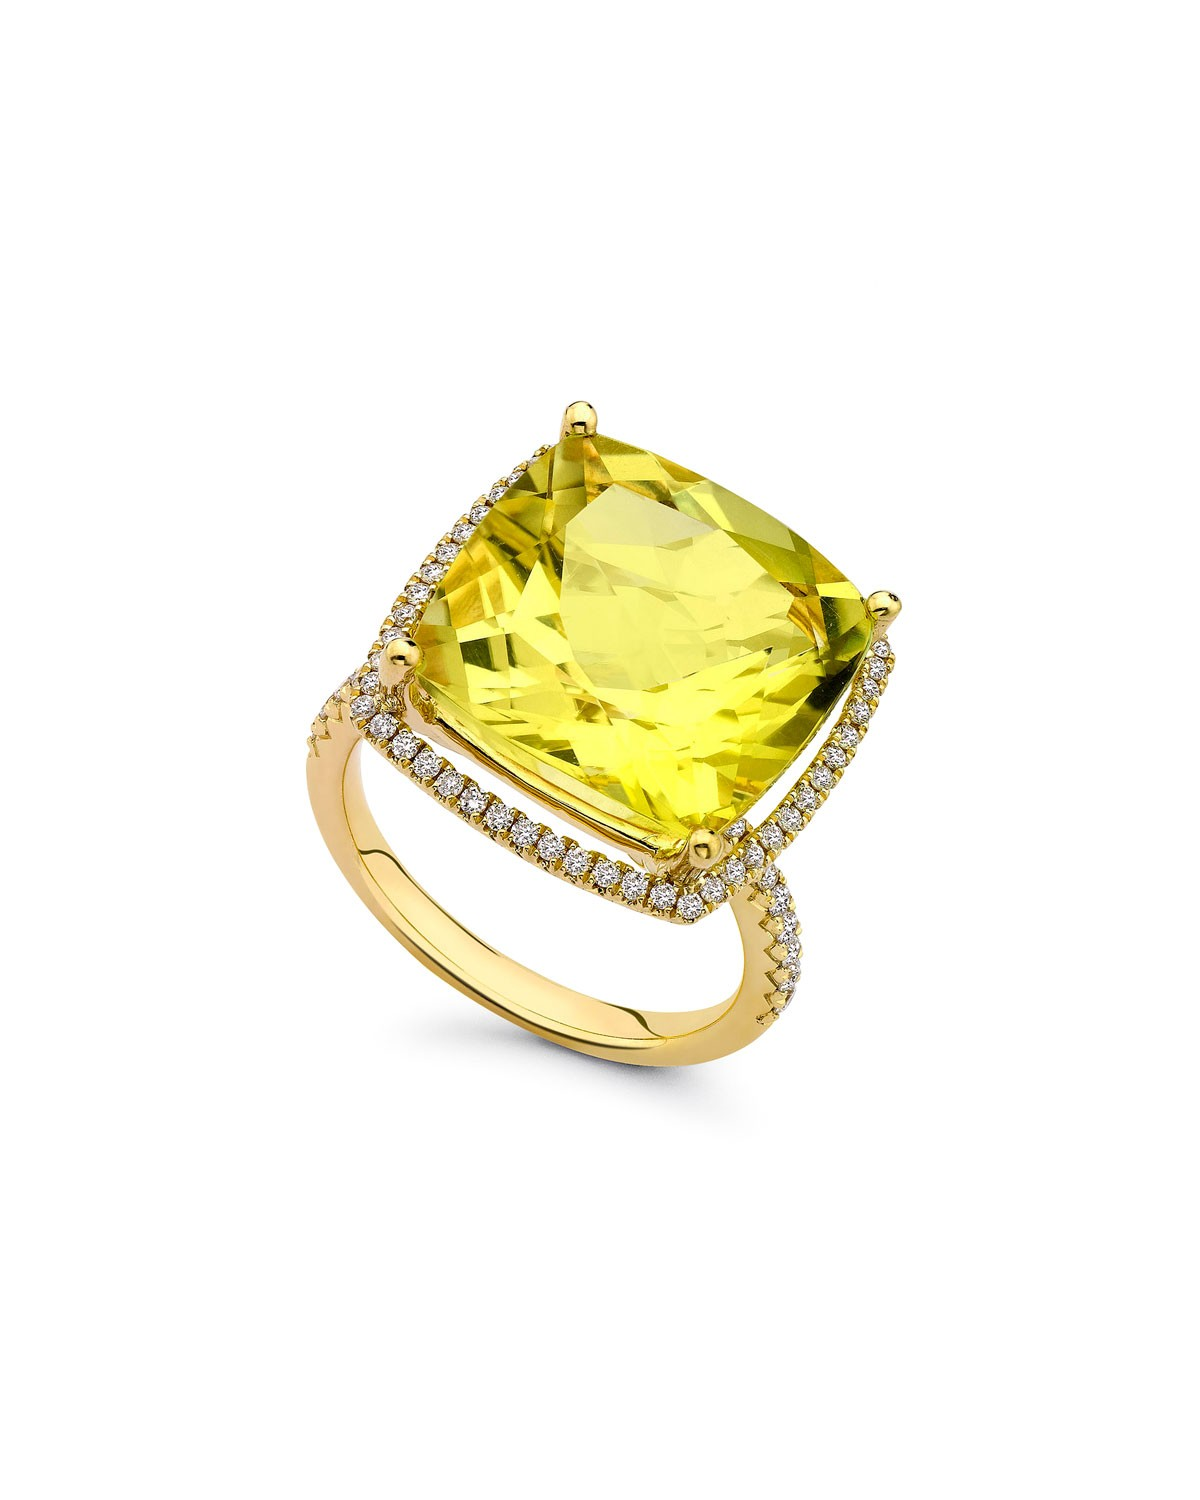 Grace Lemon Quartz & Diamond 18k Gold Ring - Kiki McDonough - Gold (6 1/4)